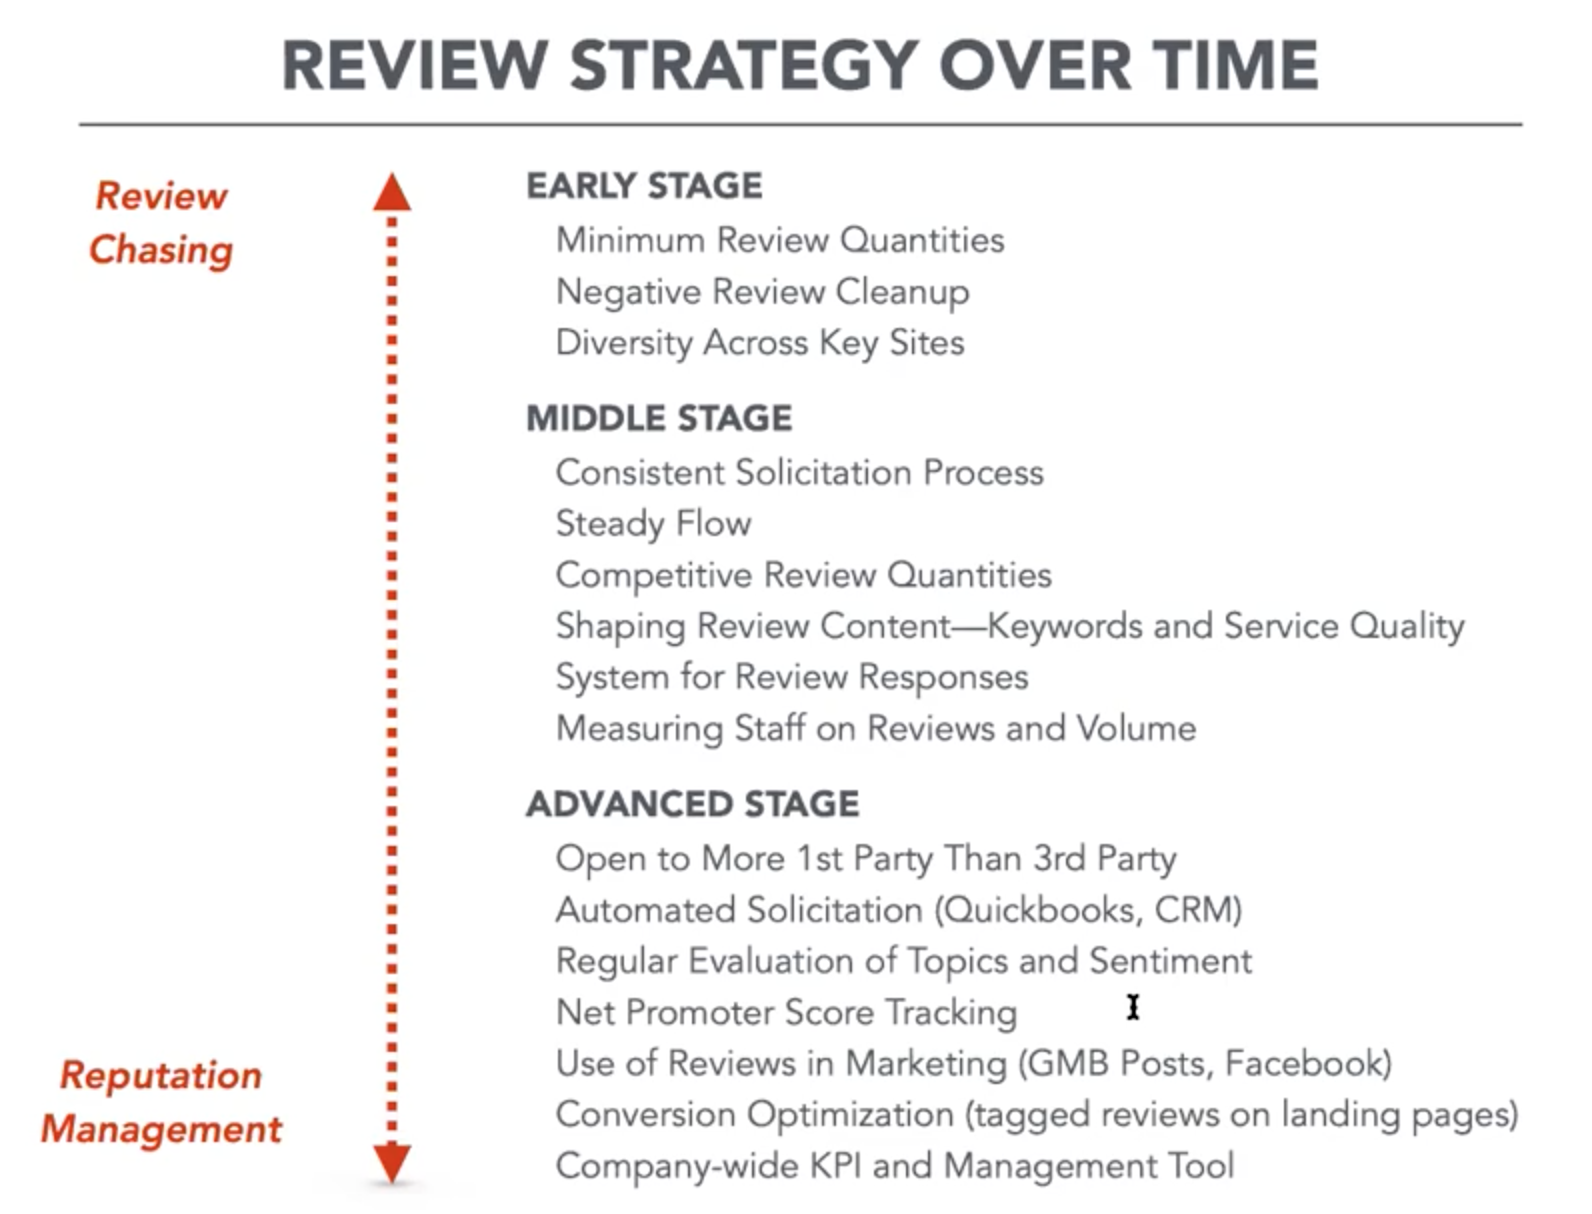 review strategy over time graphic